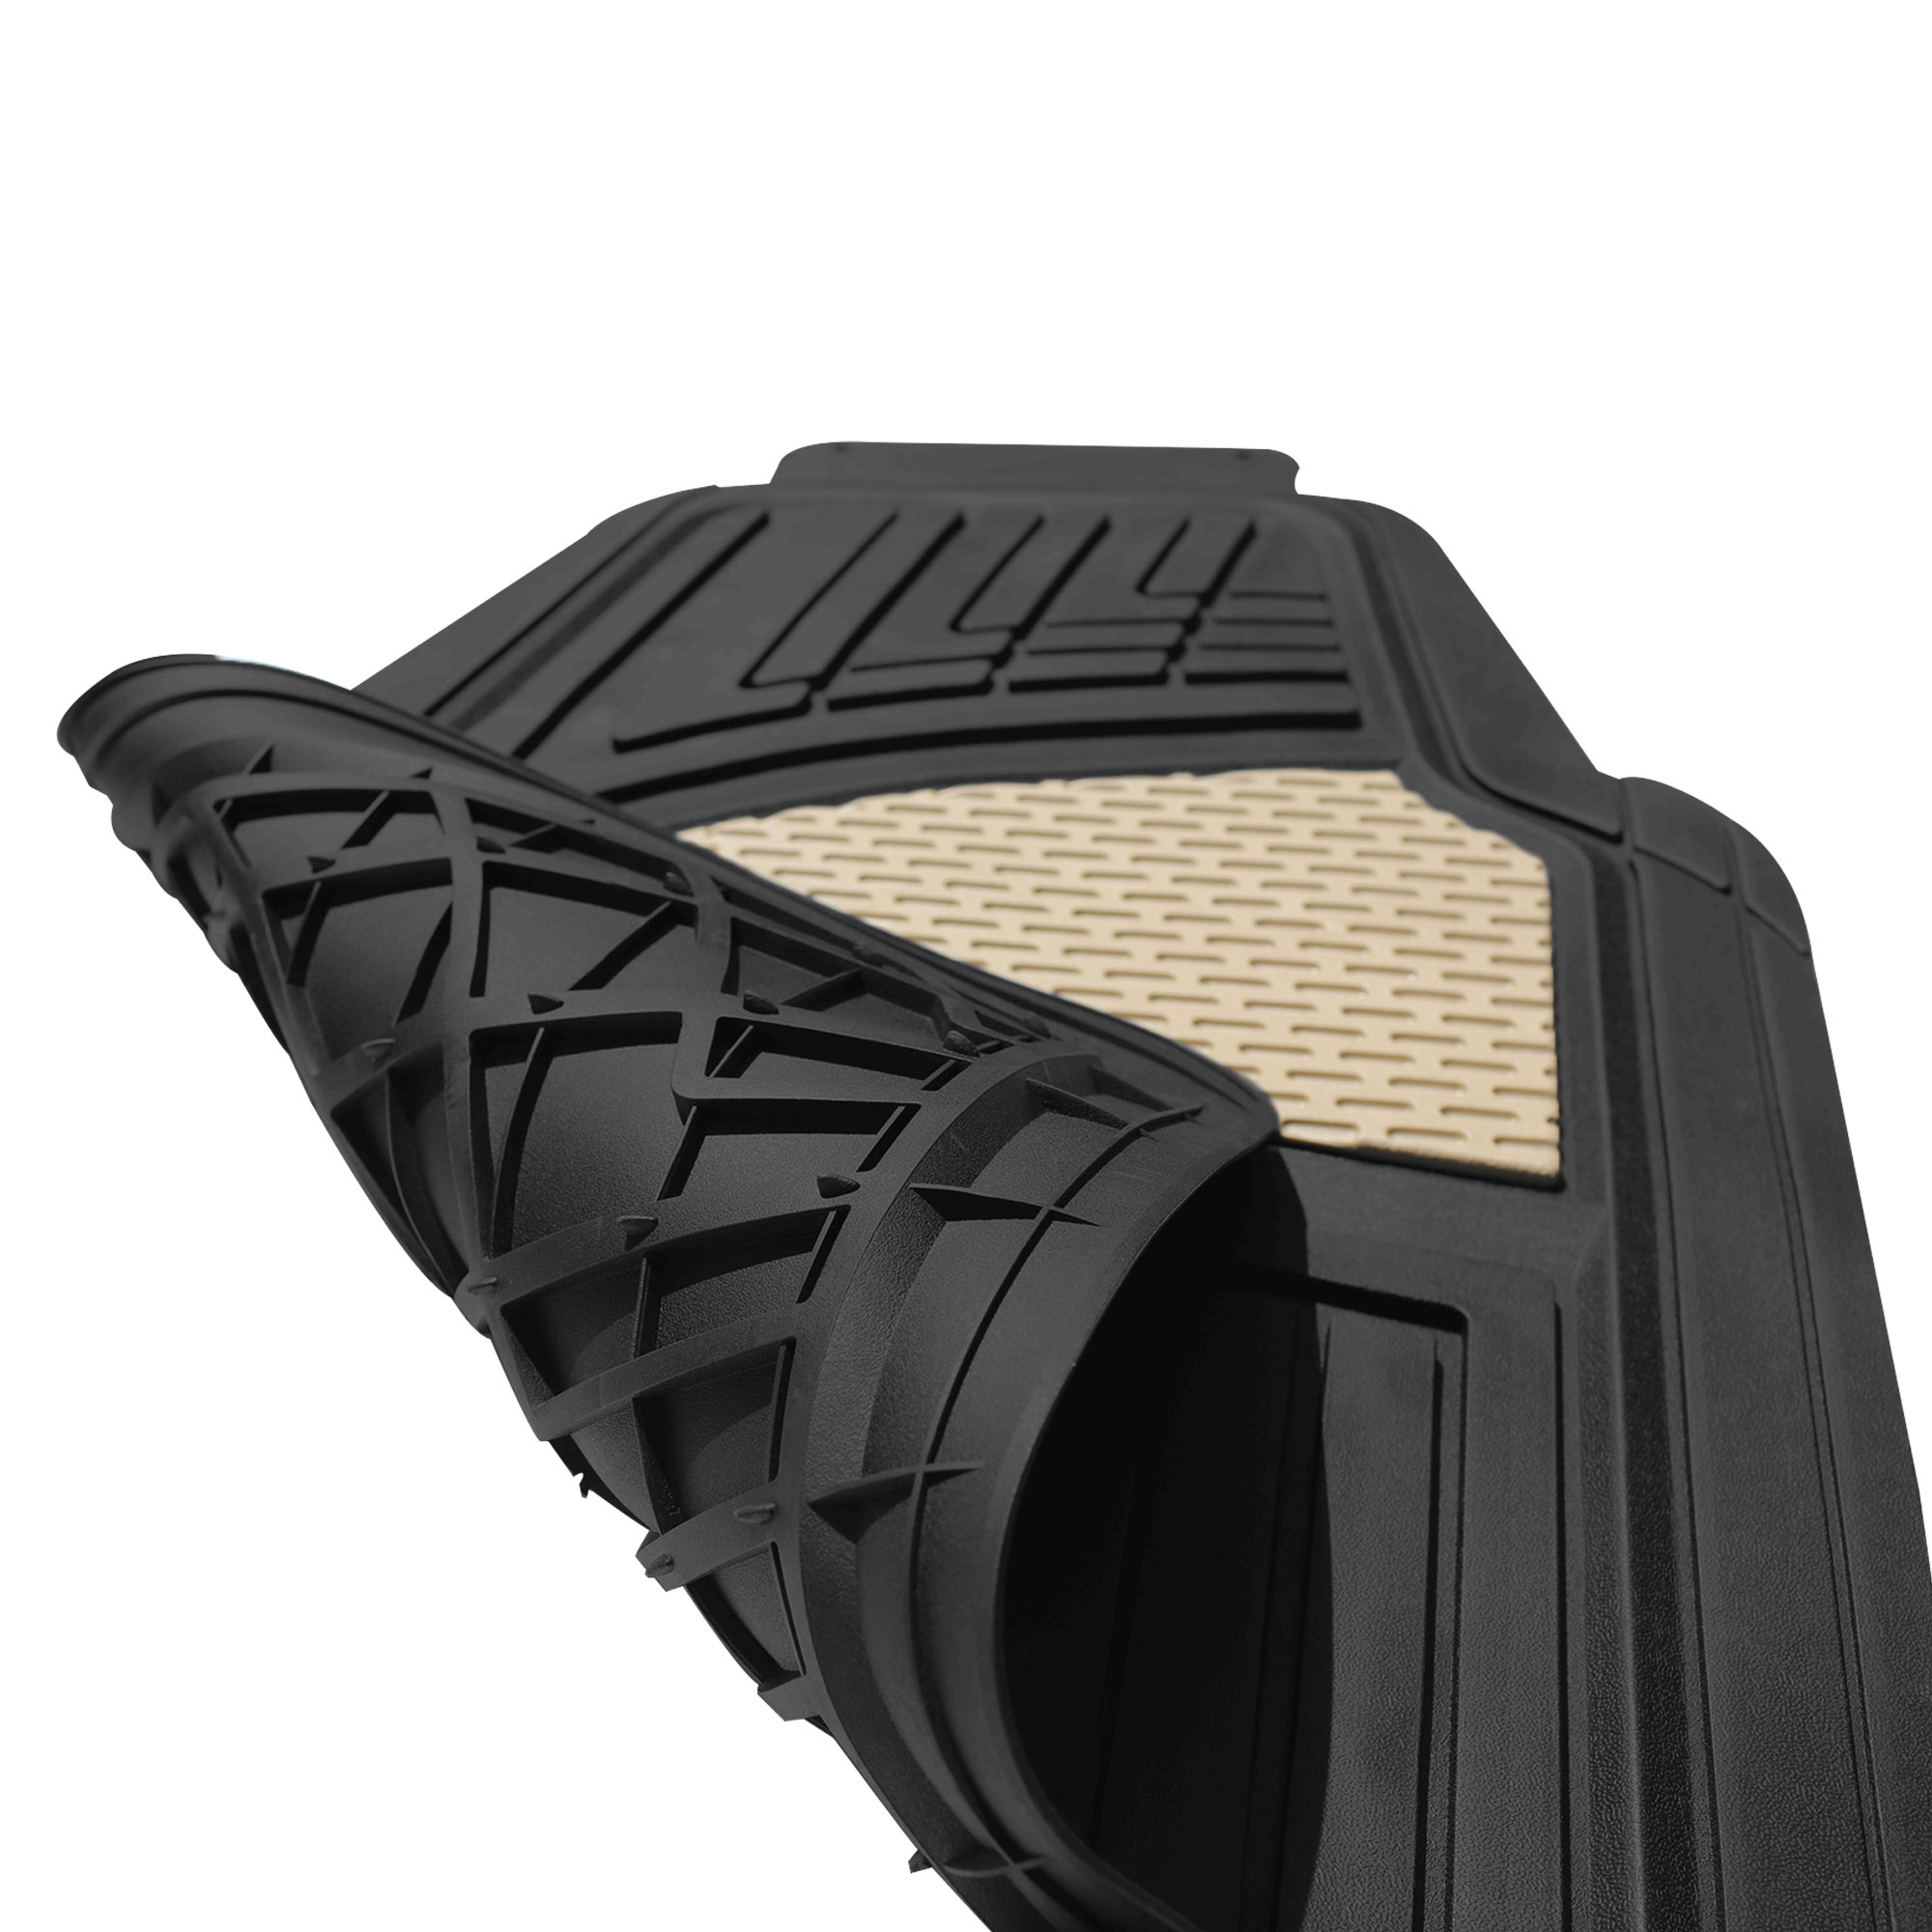 Trimmable Heavy Duty Tall Channel Floor Mats material